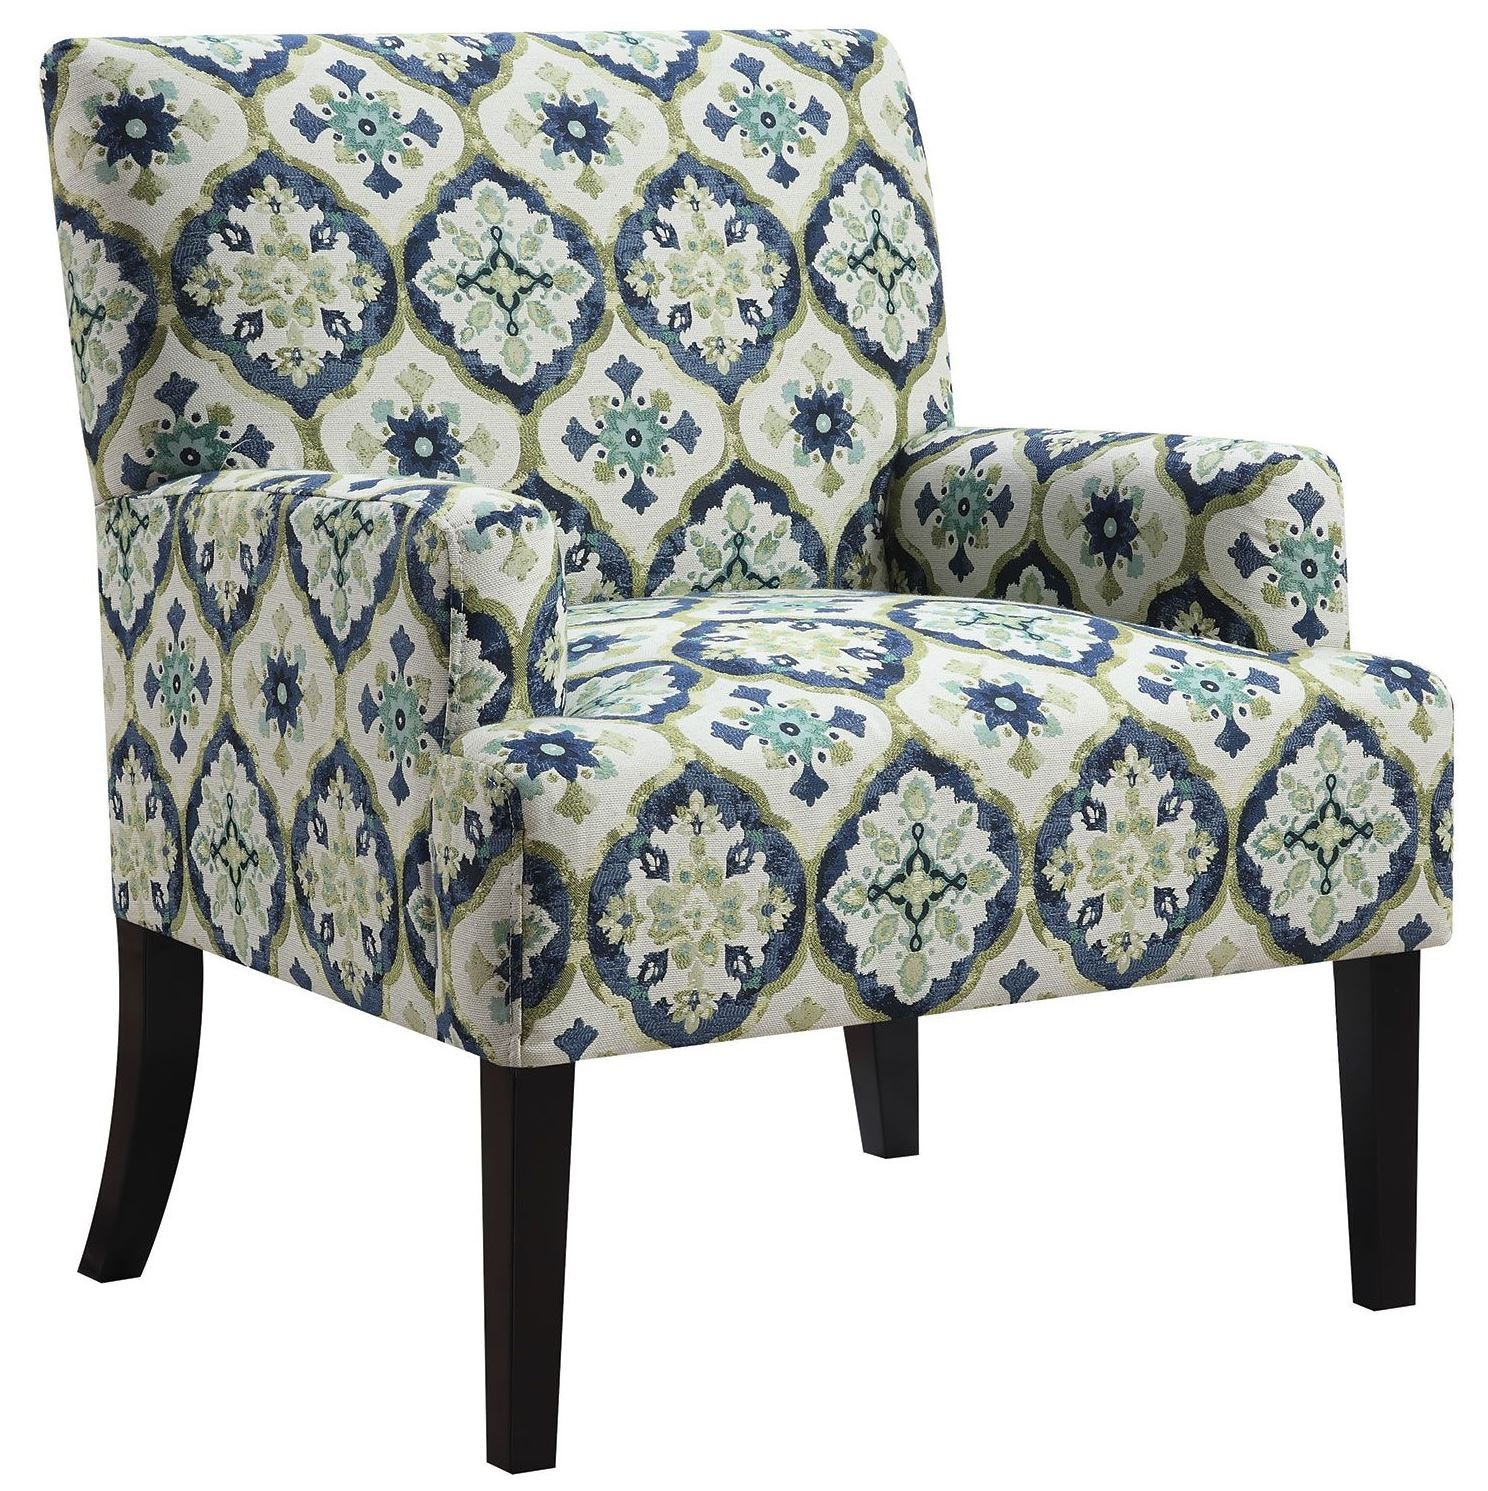 blue green chair chicco floating high and kaleidoscope pattern accent from